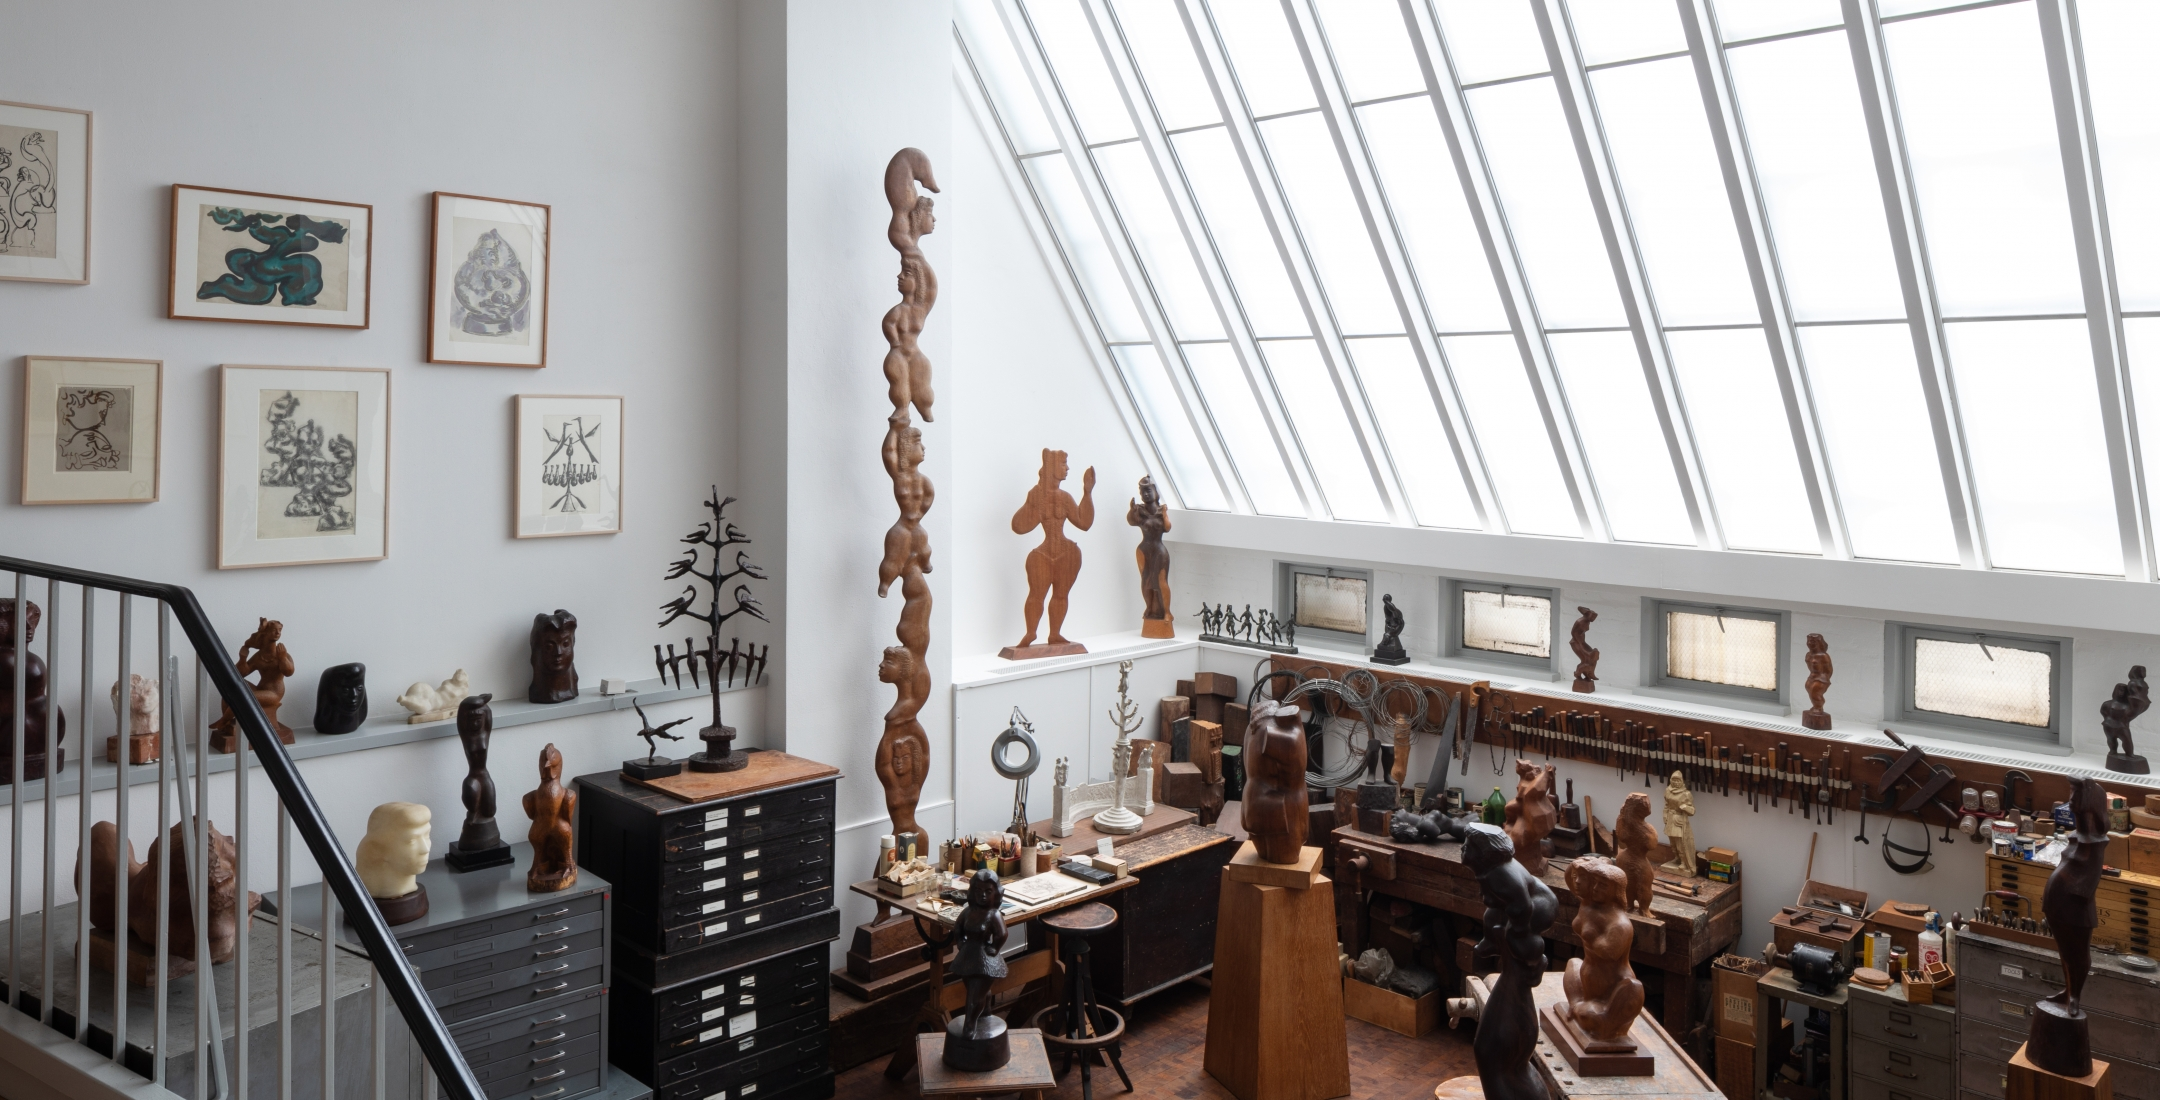 Photo of the studio at 526 LaGuardia Place. There is a skylight along the right half of the space that floods the sculptures, tools, and materials with light. There are drawings on the wall and many sculptures of human figures in wood.